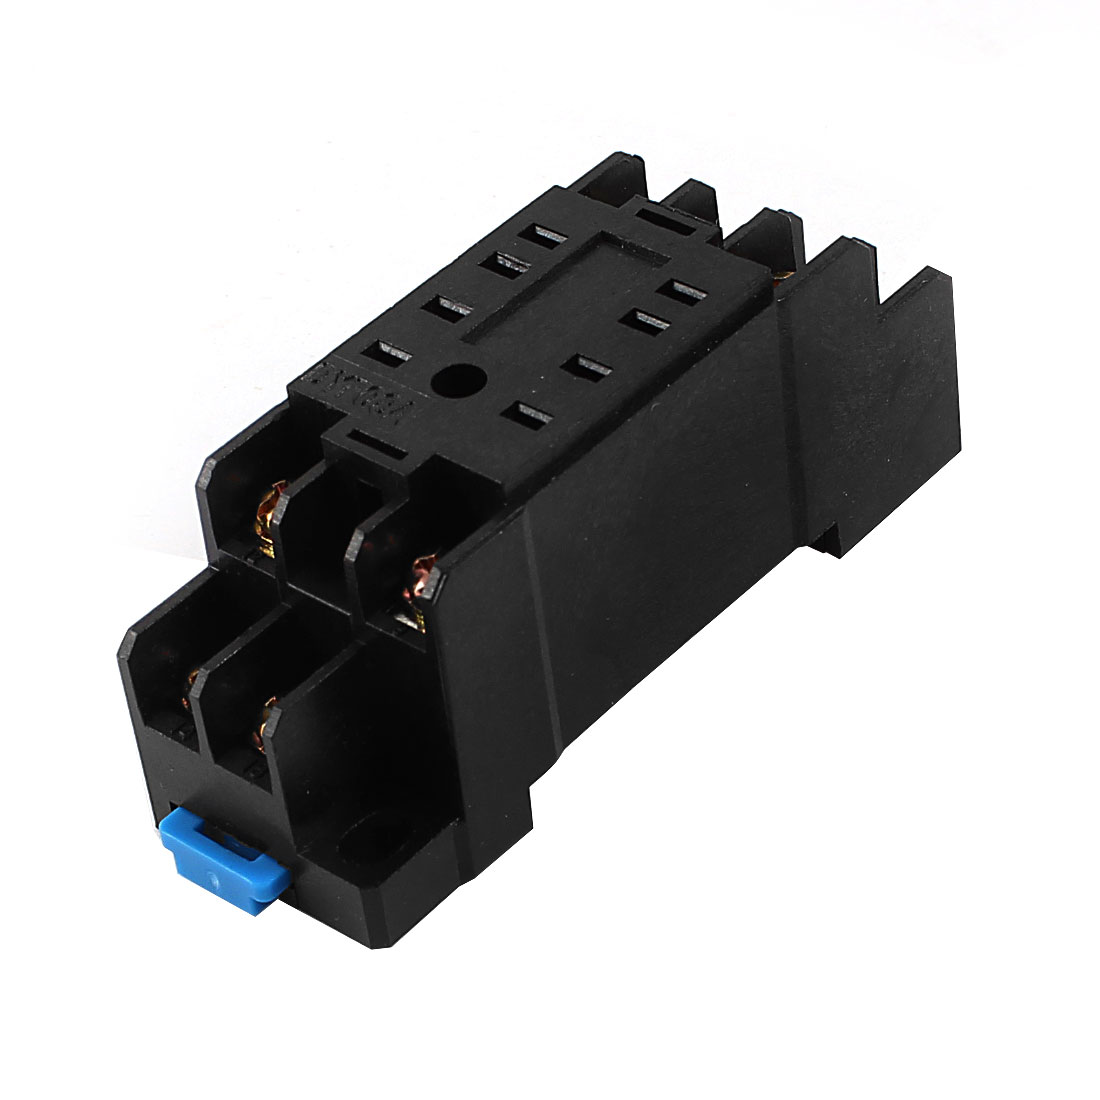 8-Pin 8P 35mm DIN Rail Mount Relay Socket Base for HH52P MY2NJ